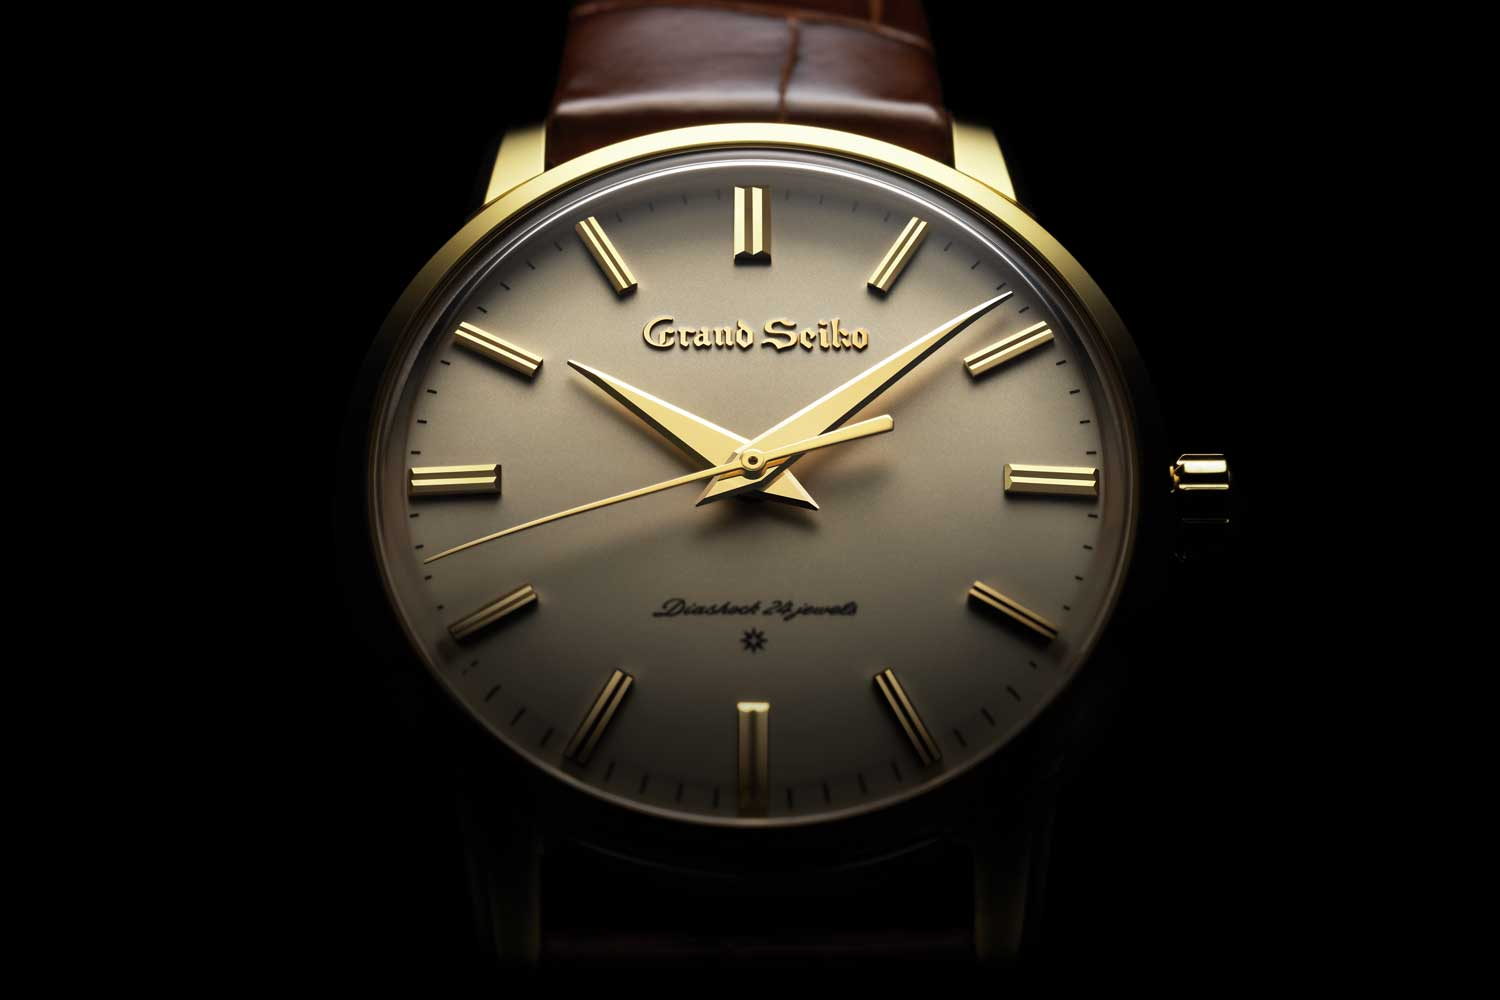 All Surfaces and angles from the case, dial, hands and indices had to be flat and geometrically perfect to best reflect light.